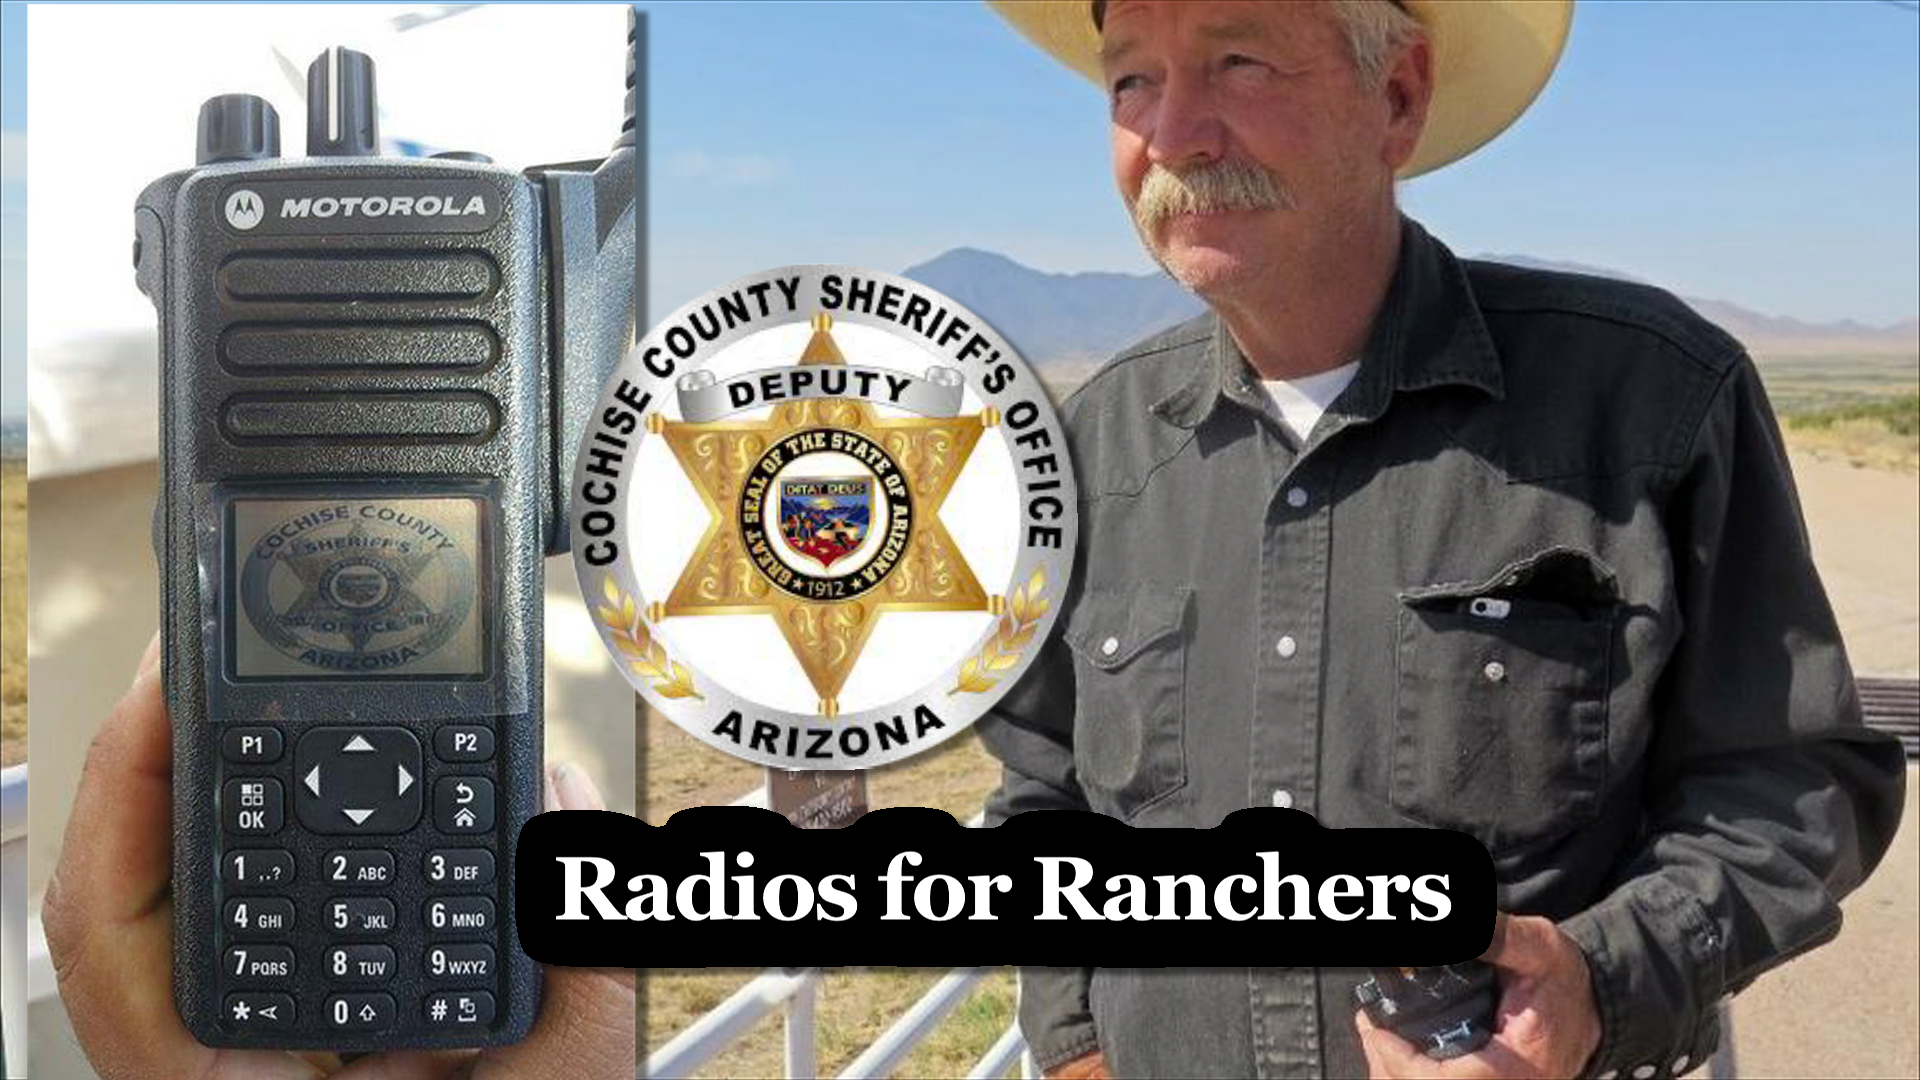 RADIOS FOR RANCHERS